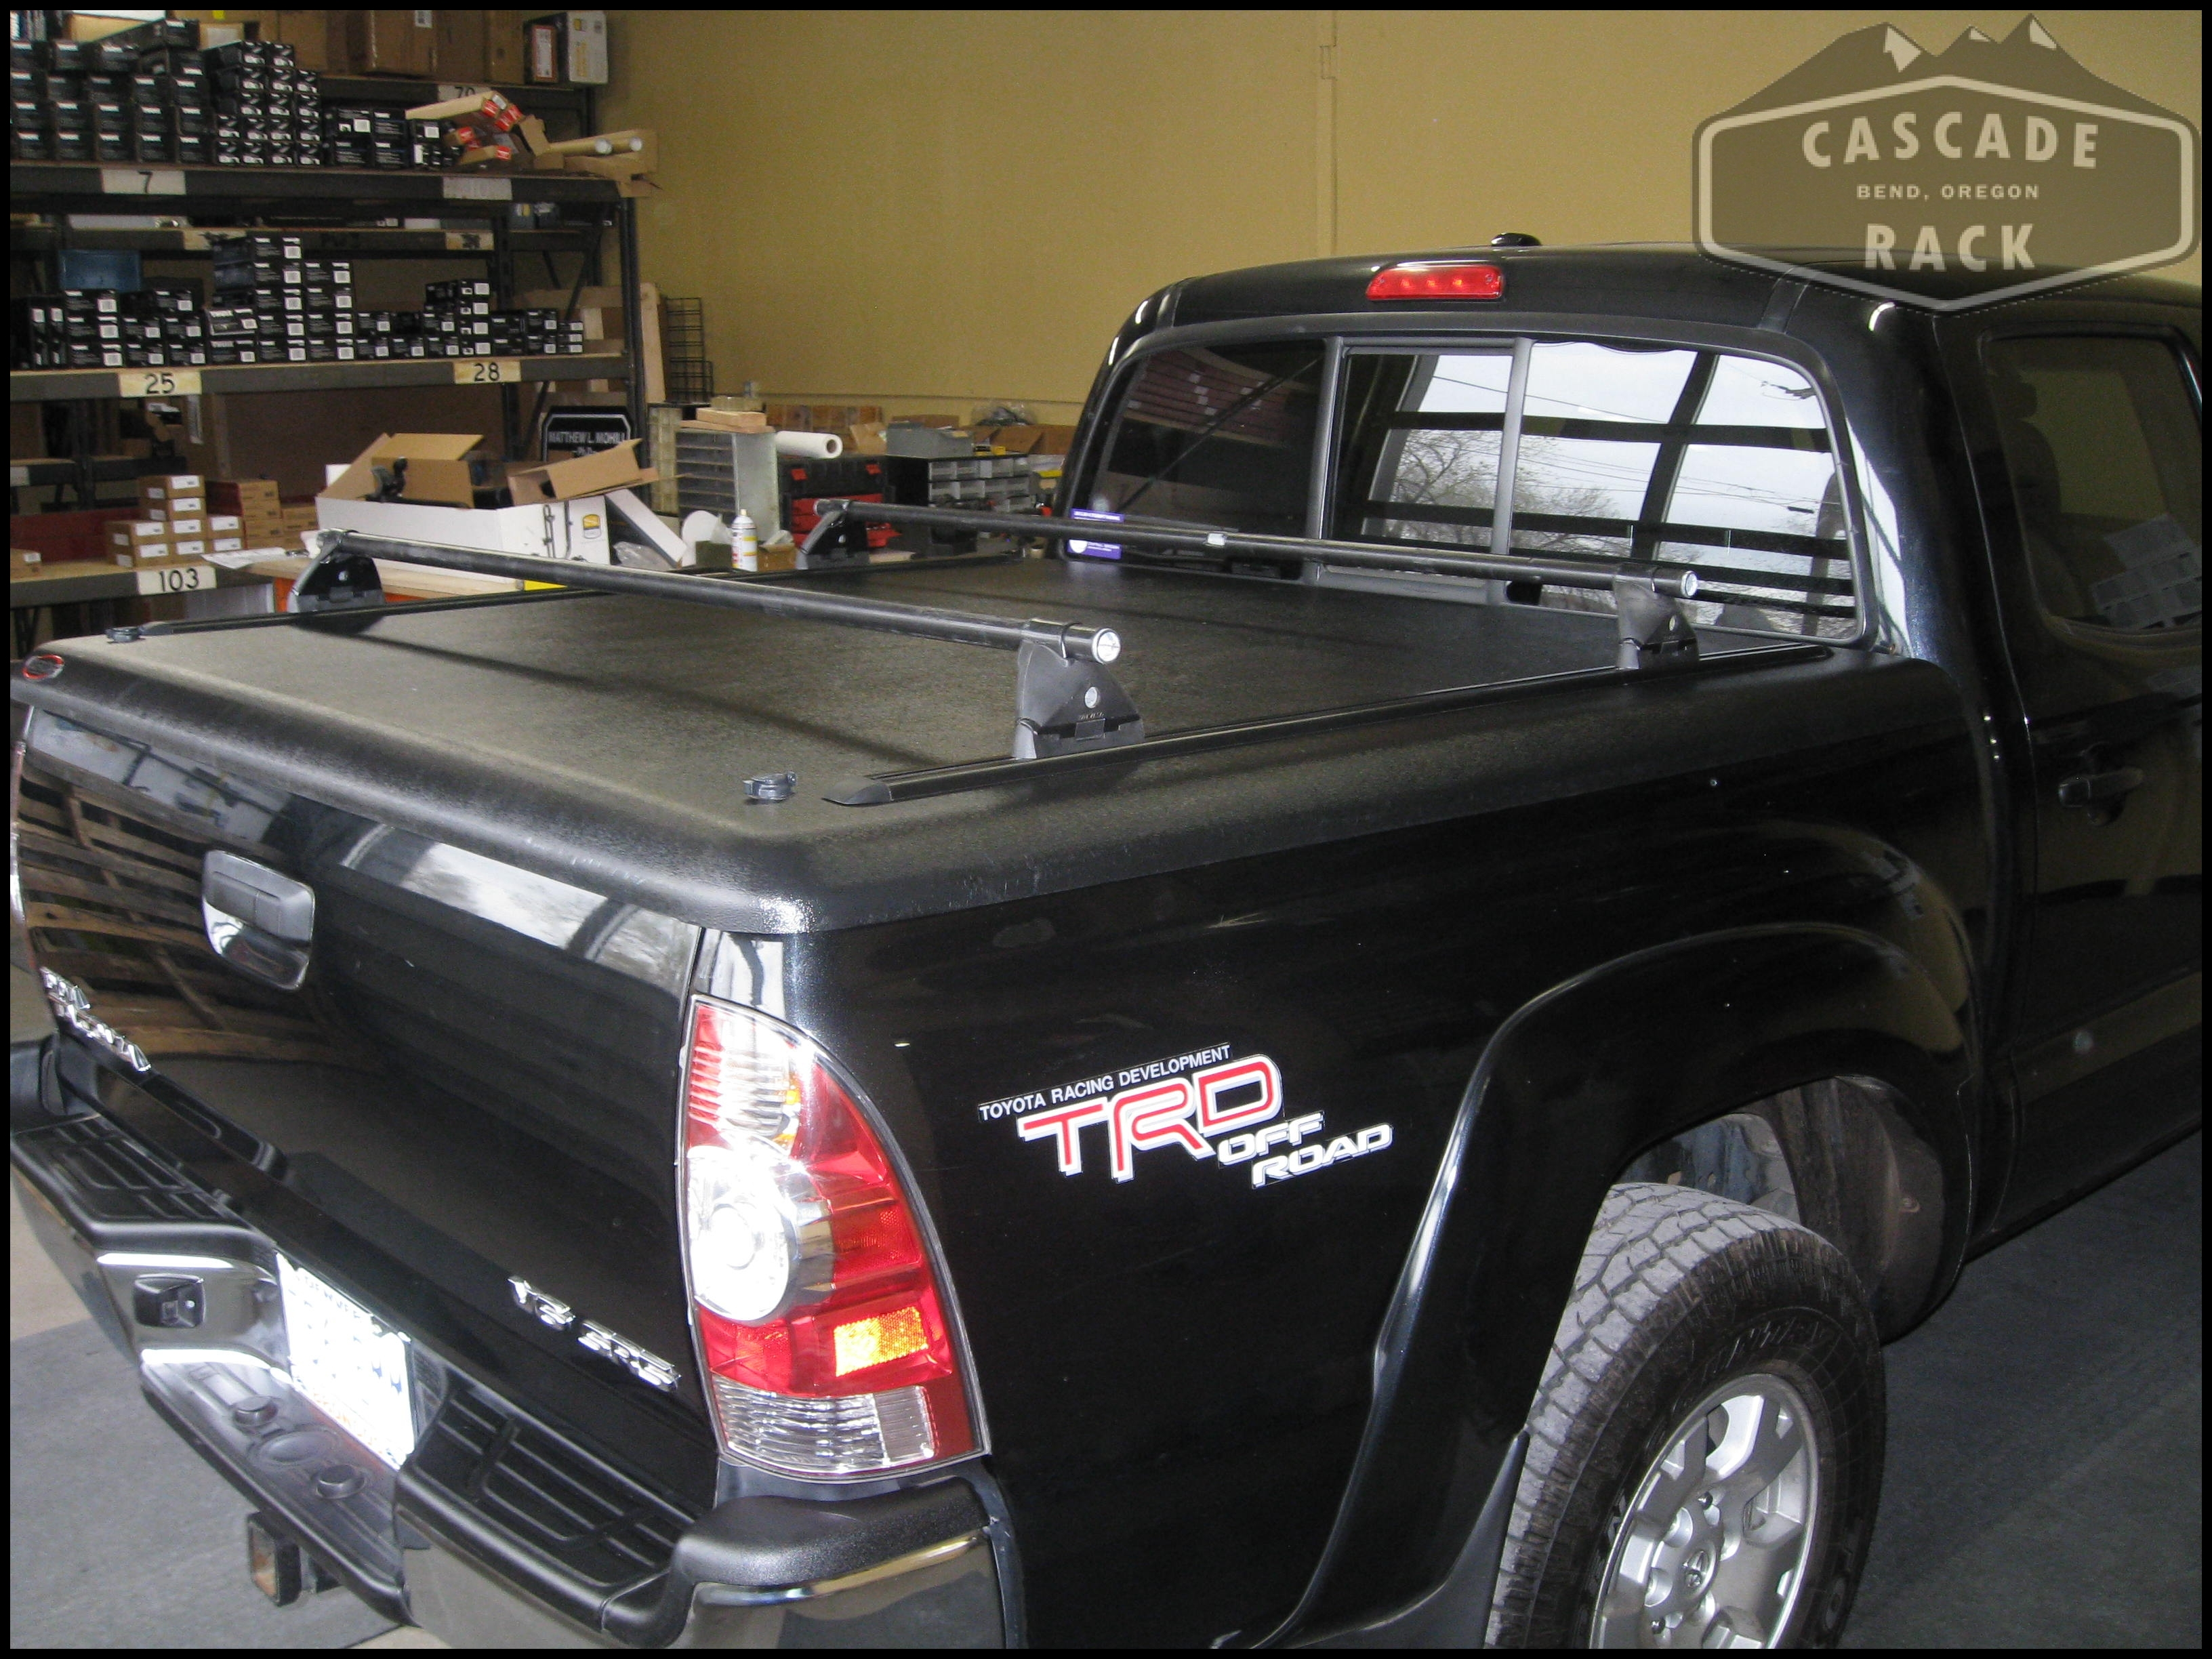 Full Image for Toyota Truck Bed Cover 76 Toyota Pickup Truck Bed Covers Cascade Rack Installation